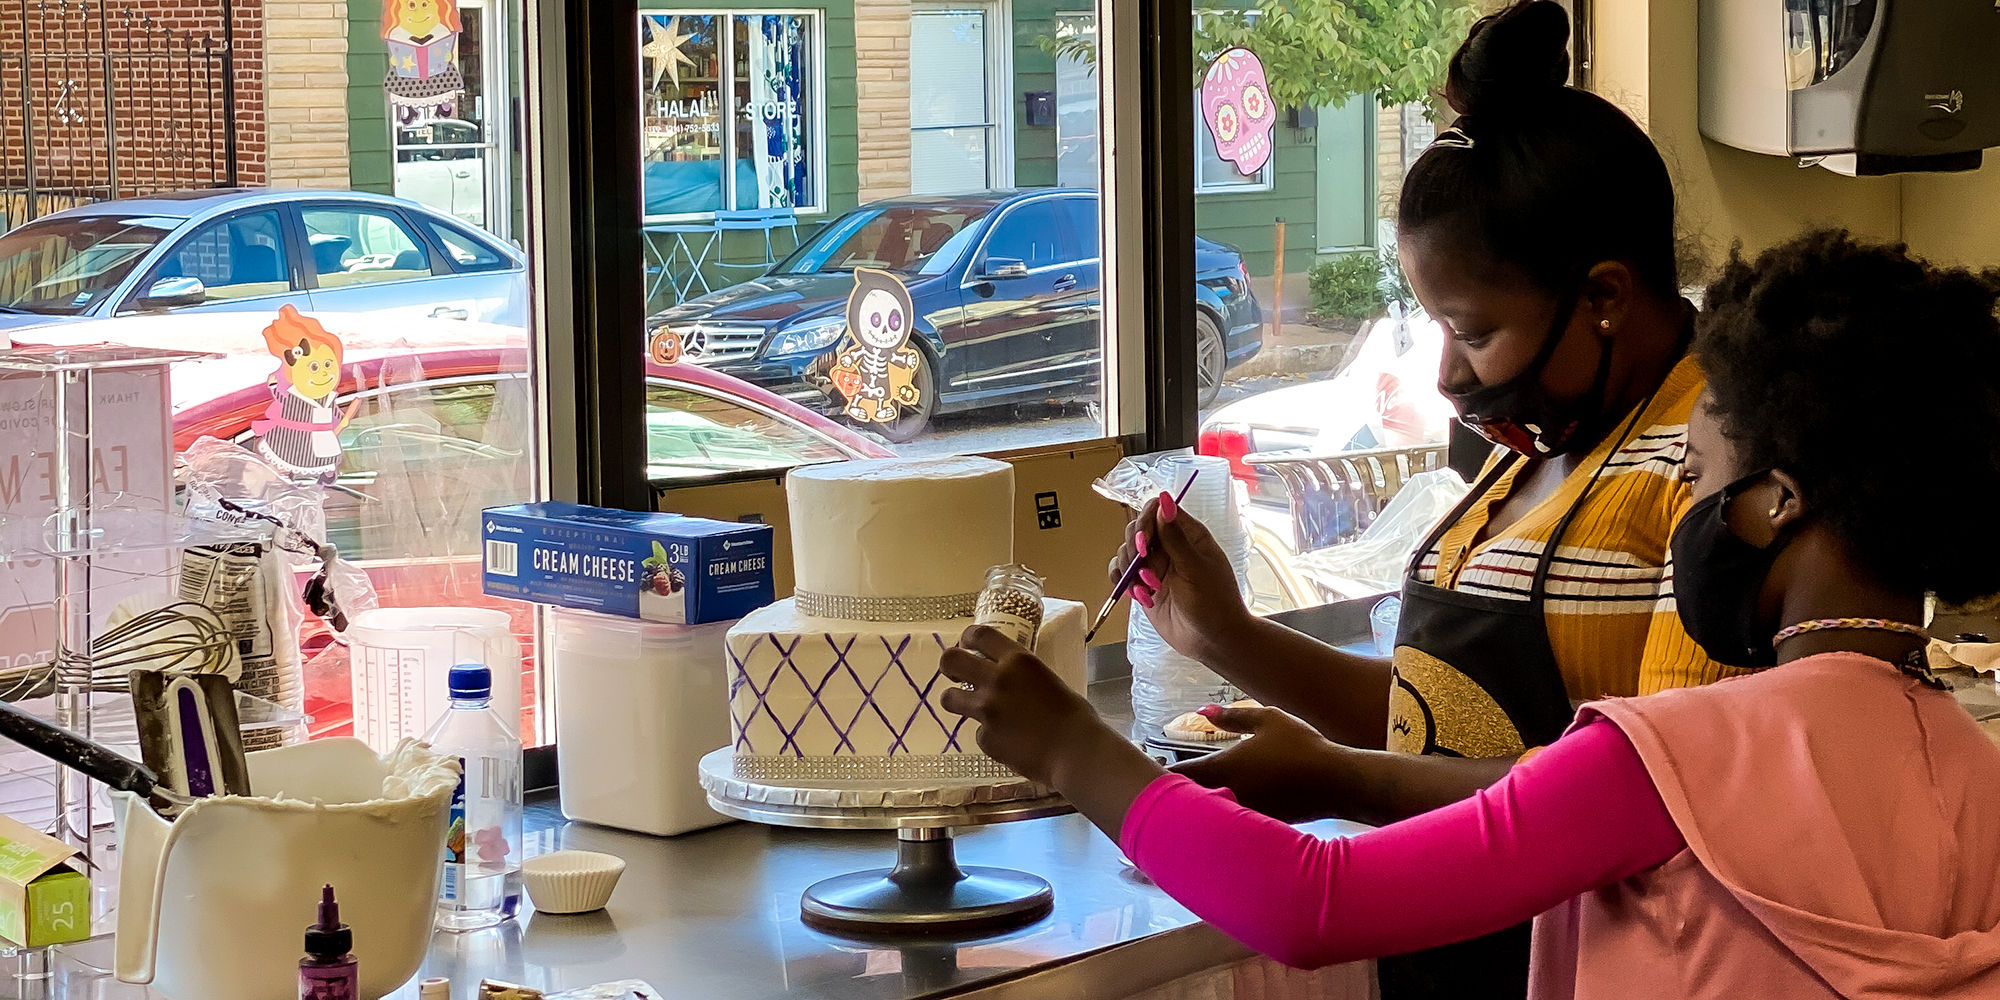 Cake decorating at Pies and Surprise in Downtown Dutchtown, St. Louis.